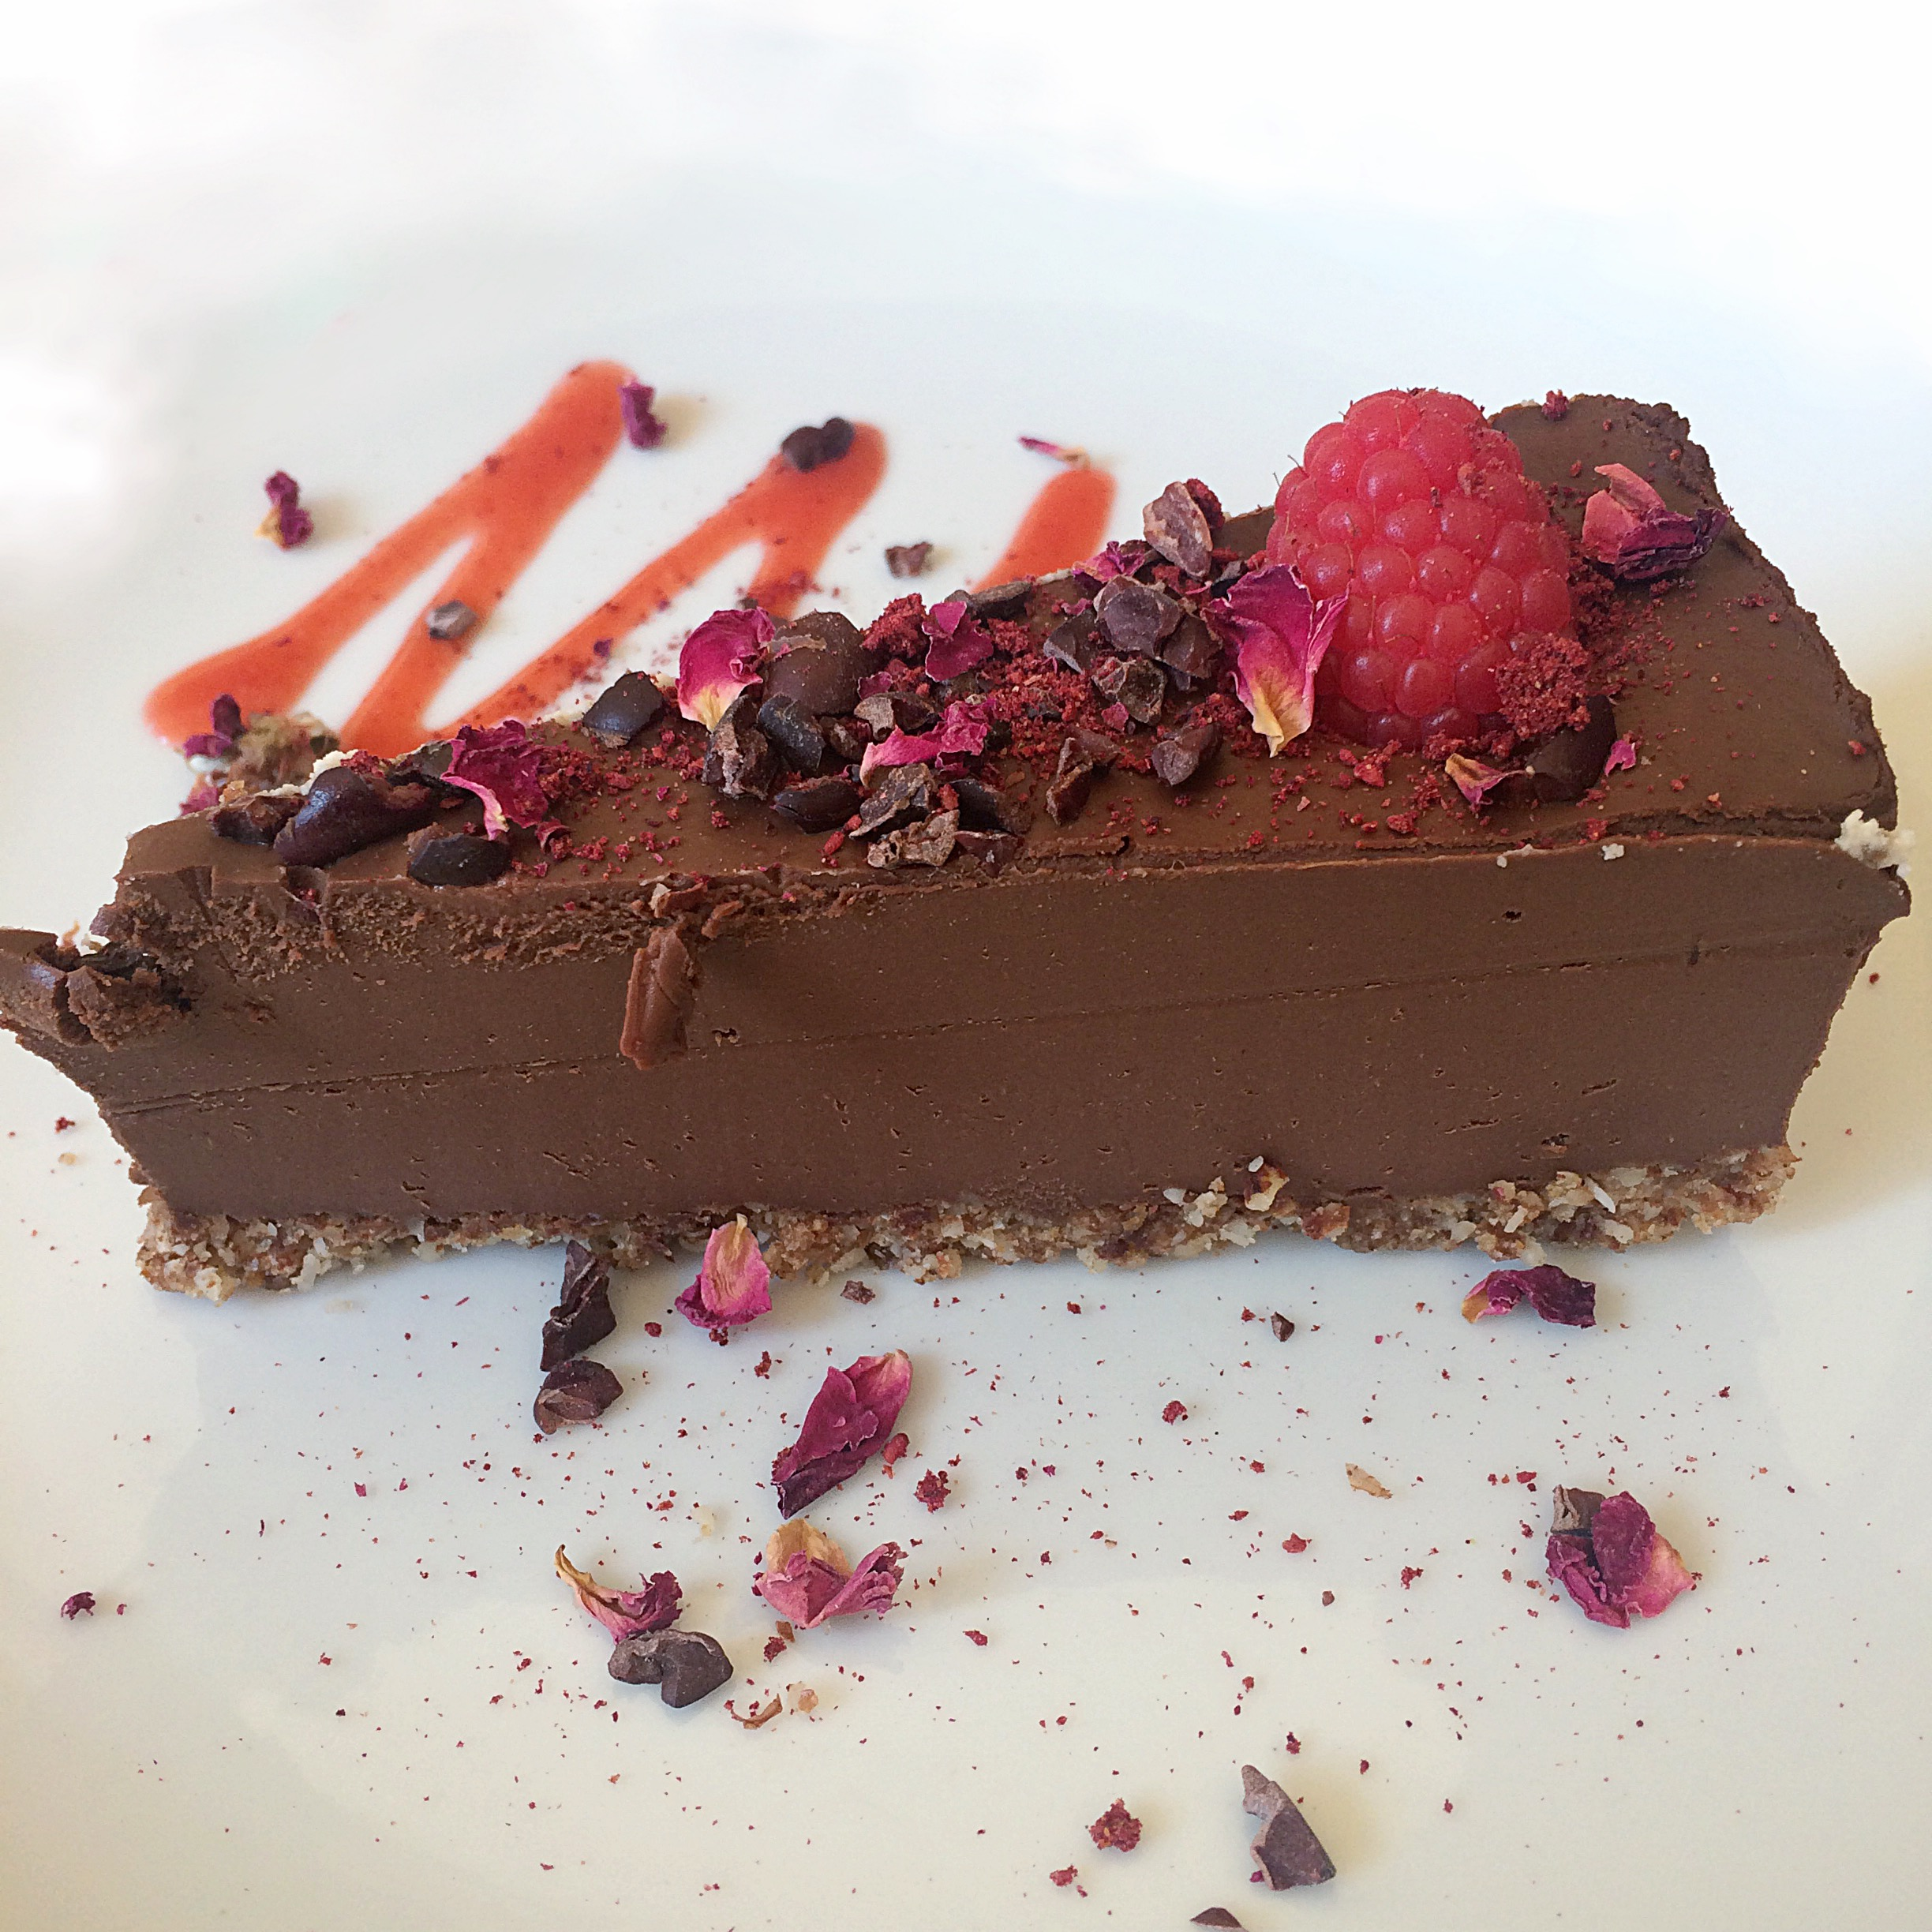 THE Raw Chocolate Tart